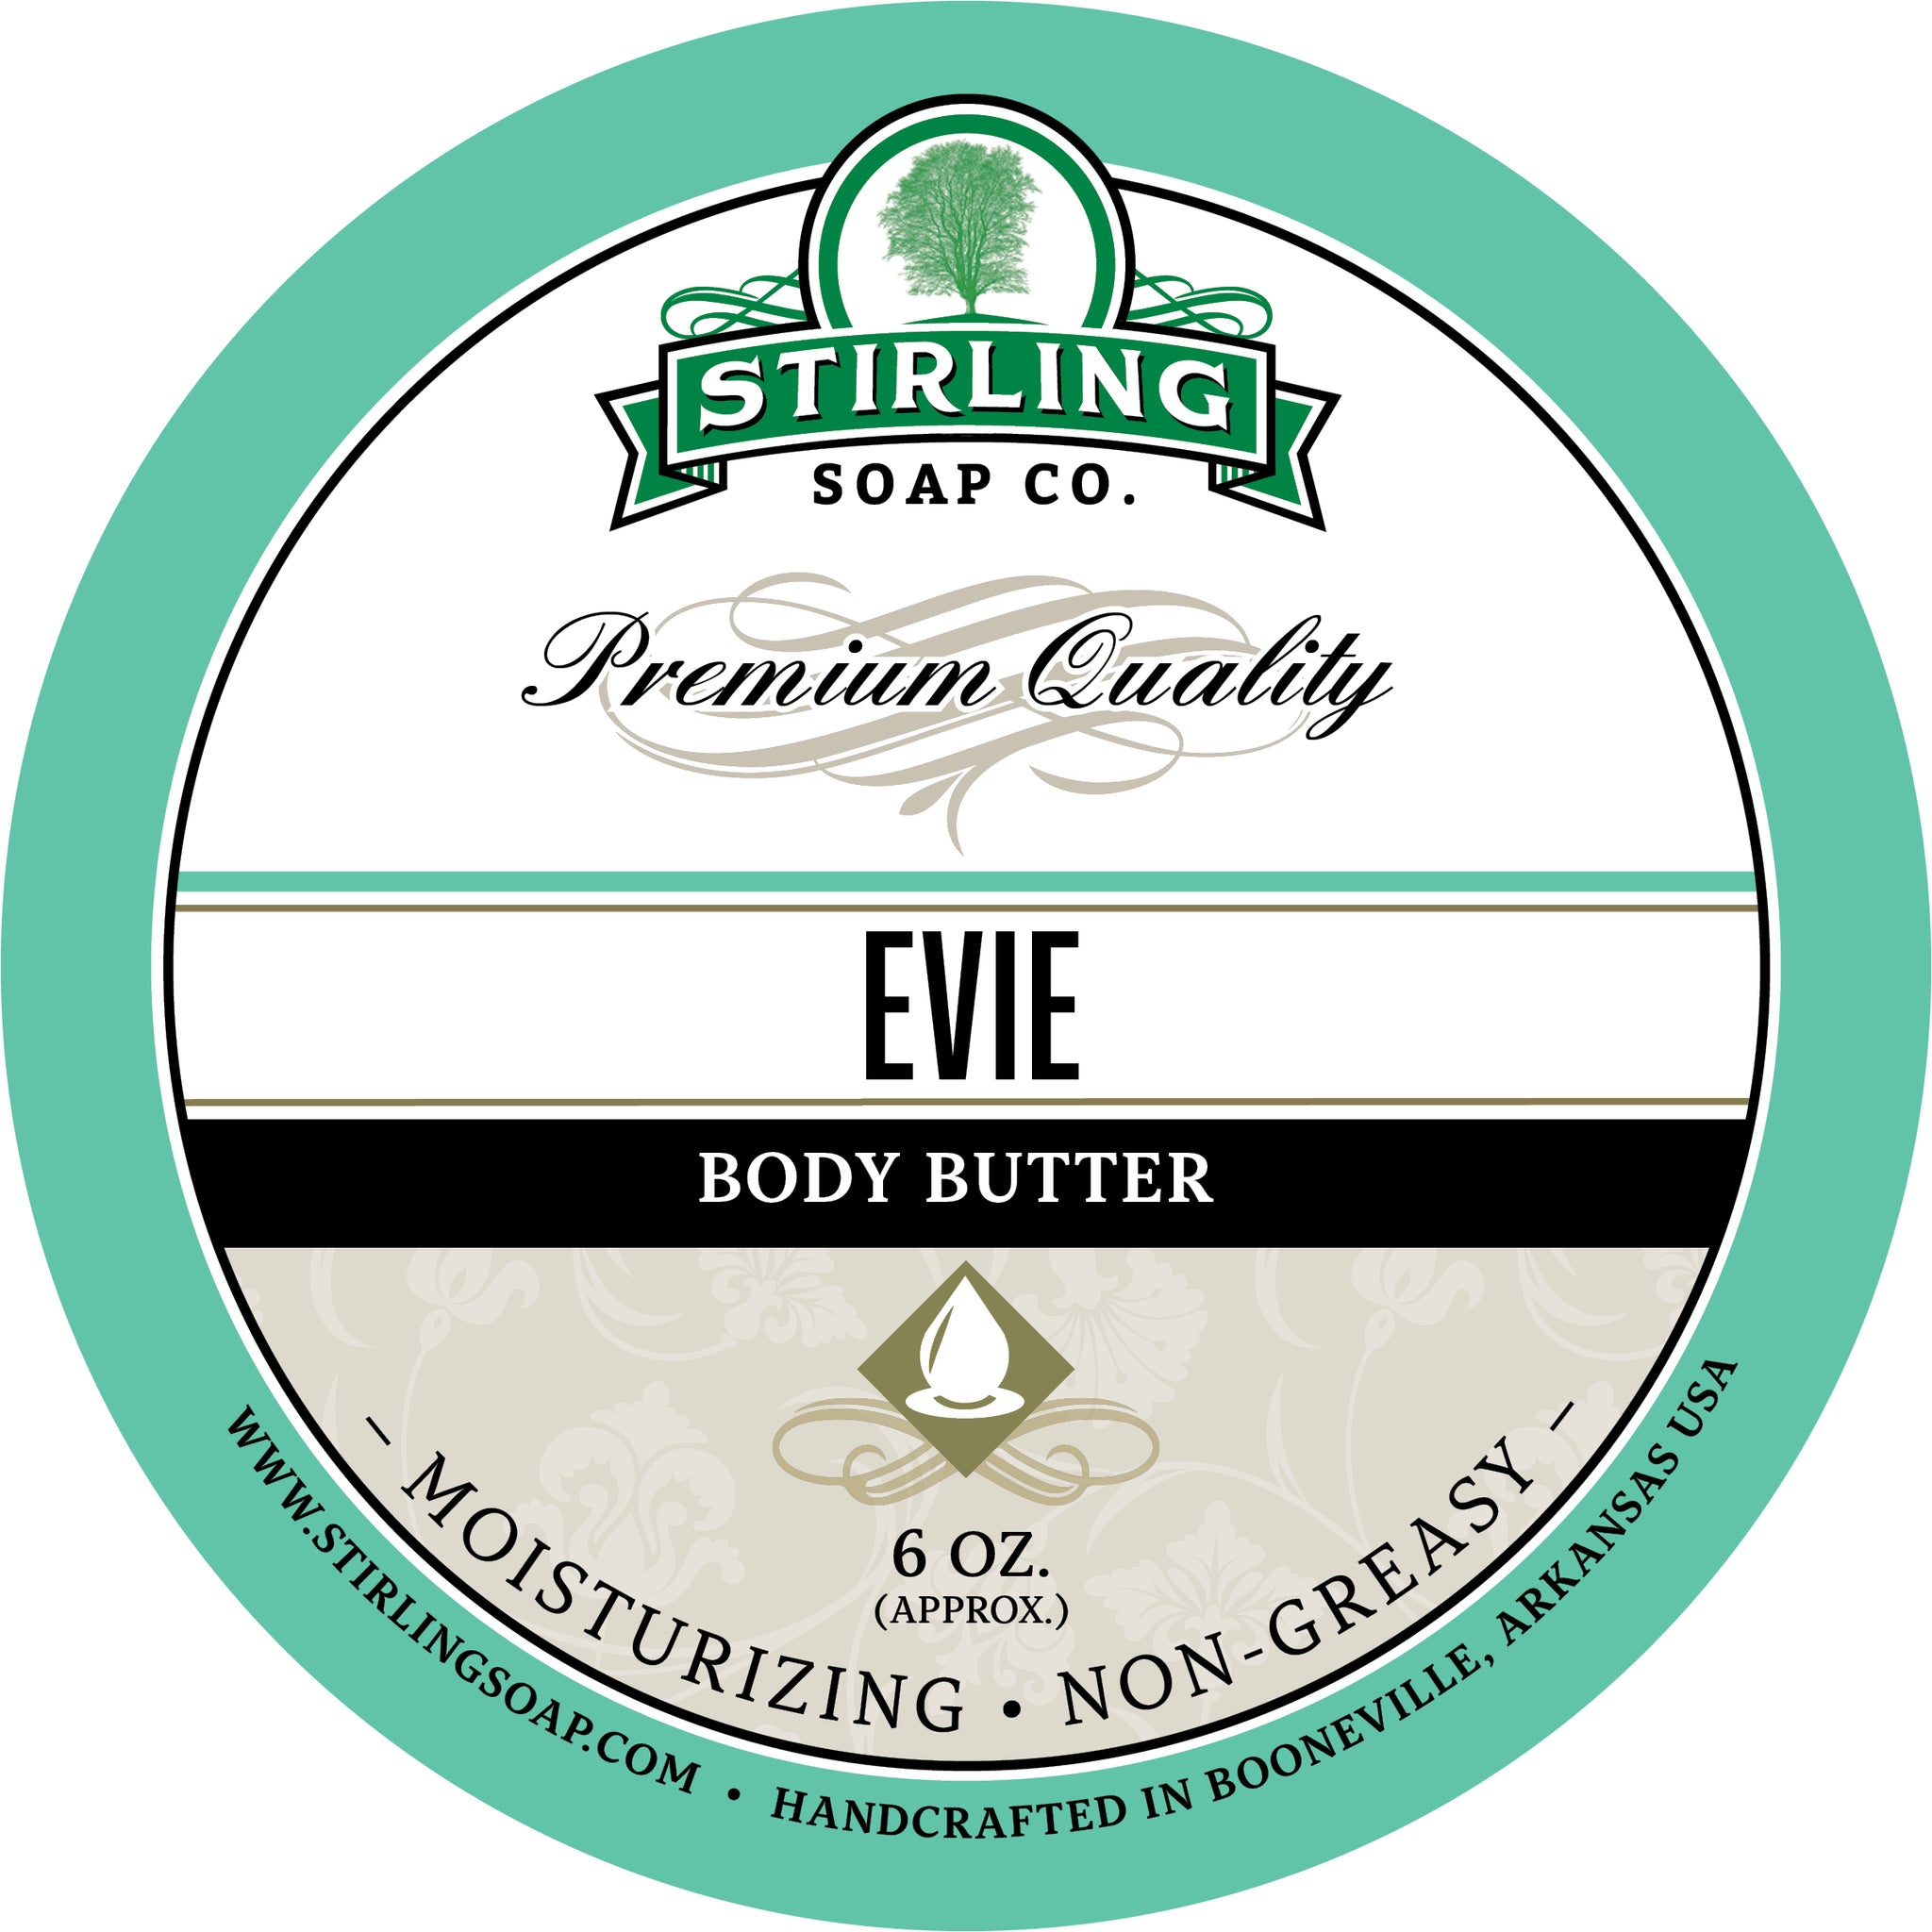 Evie - Body Butter